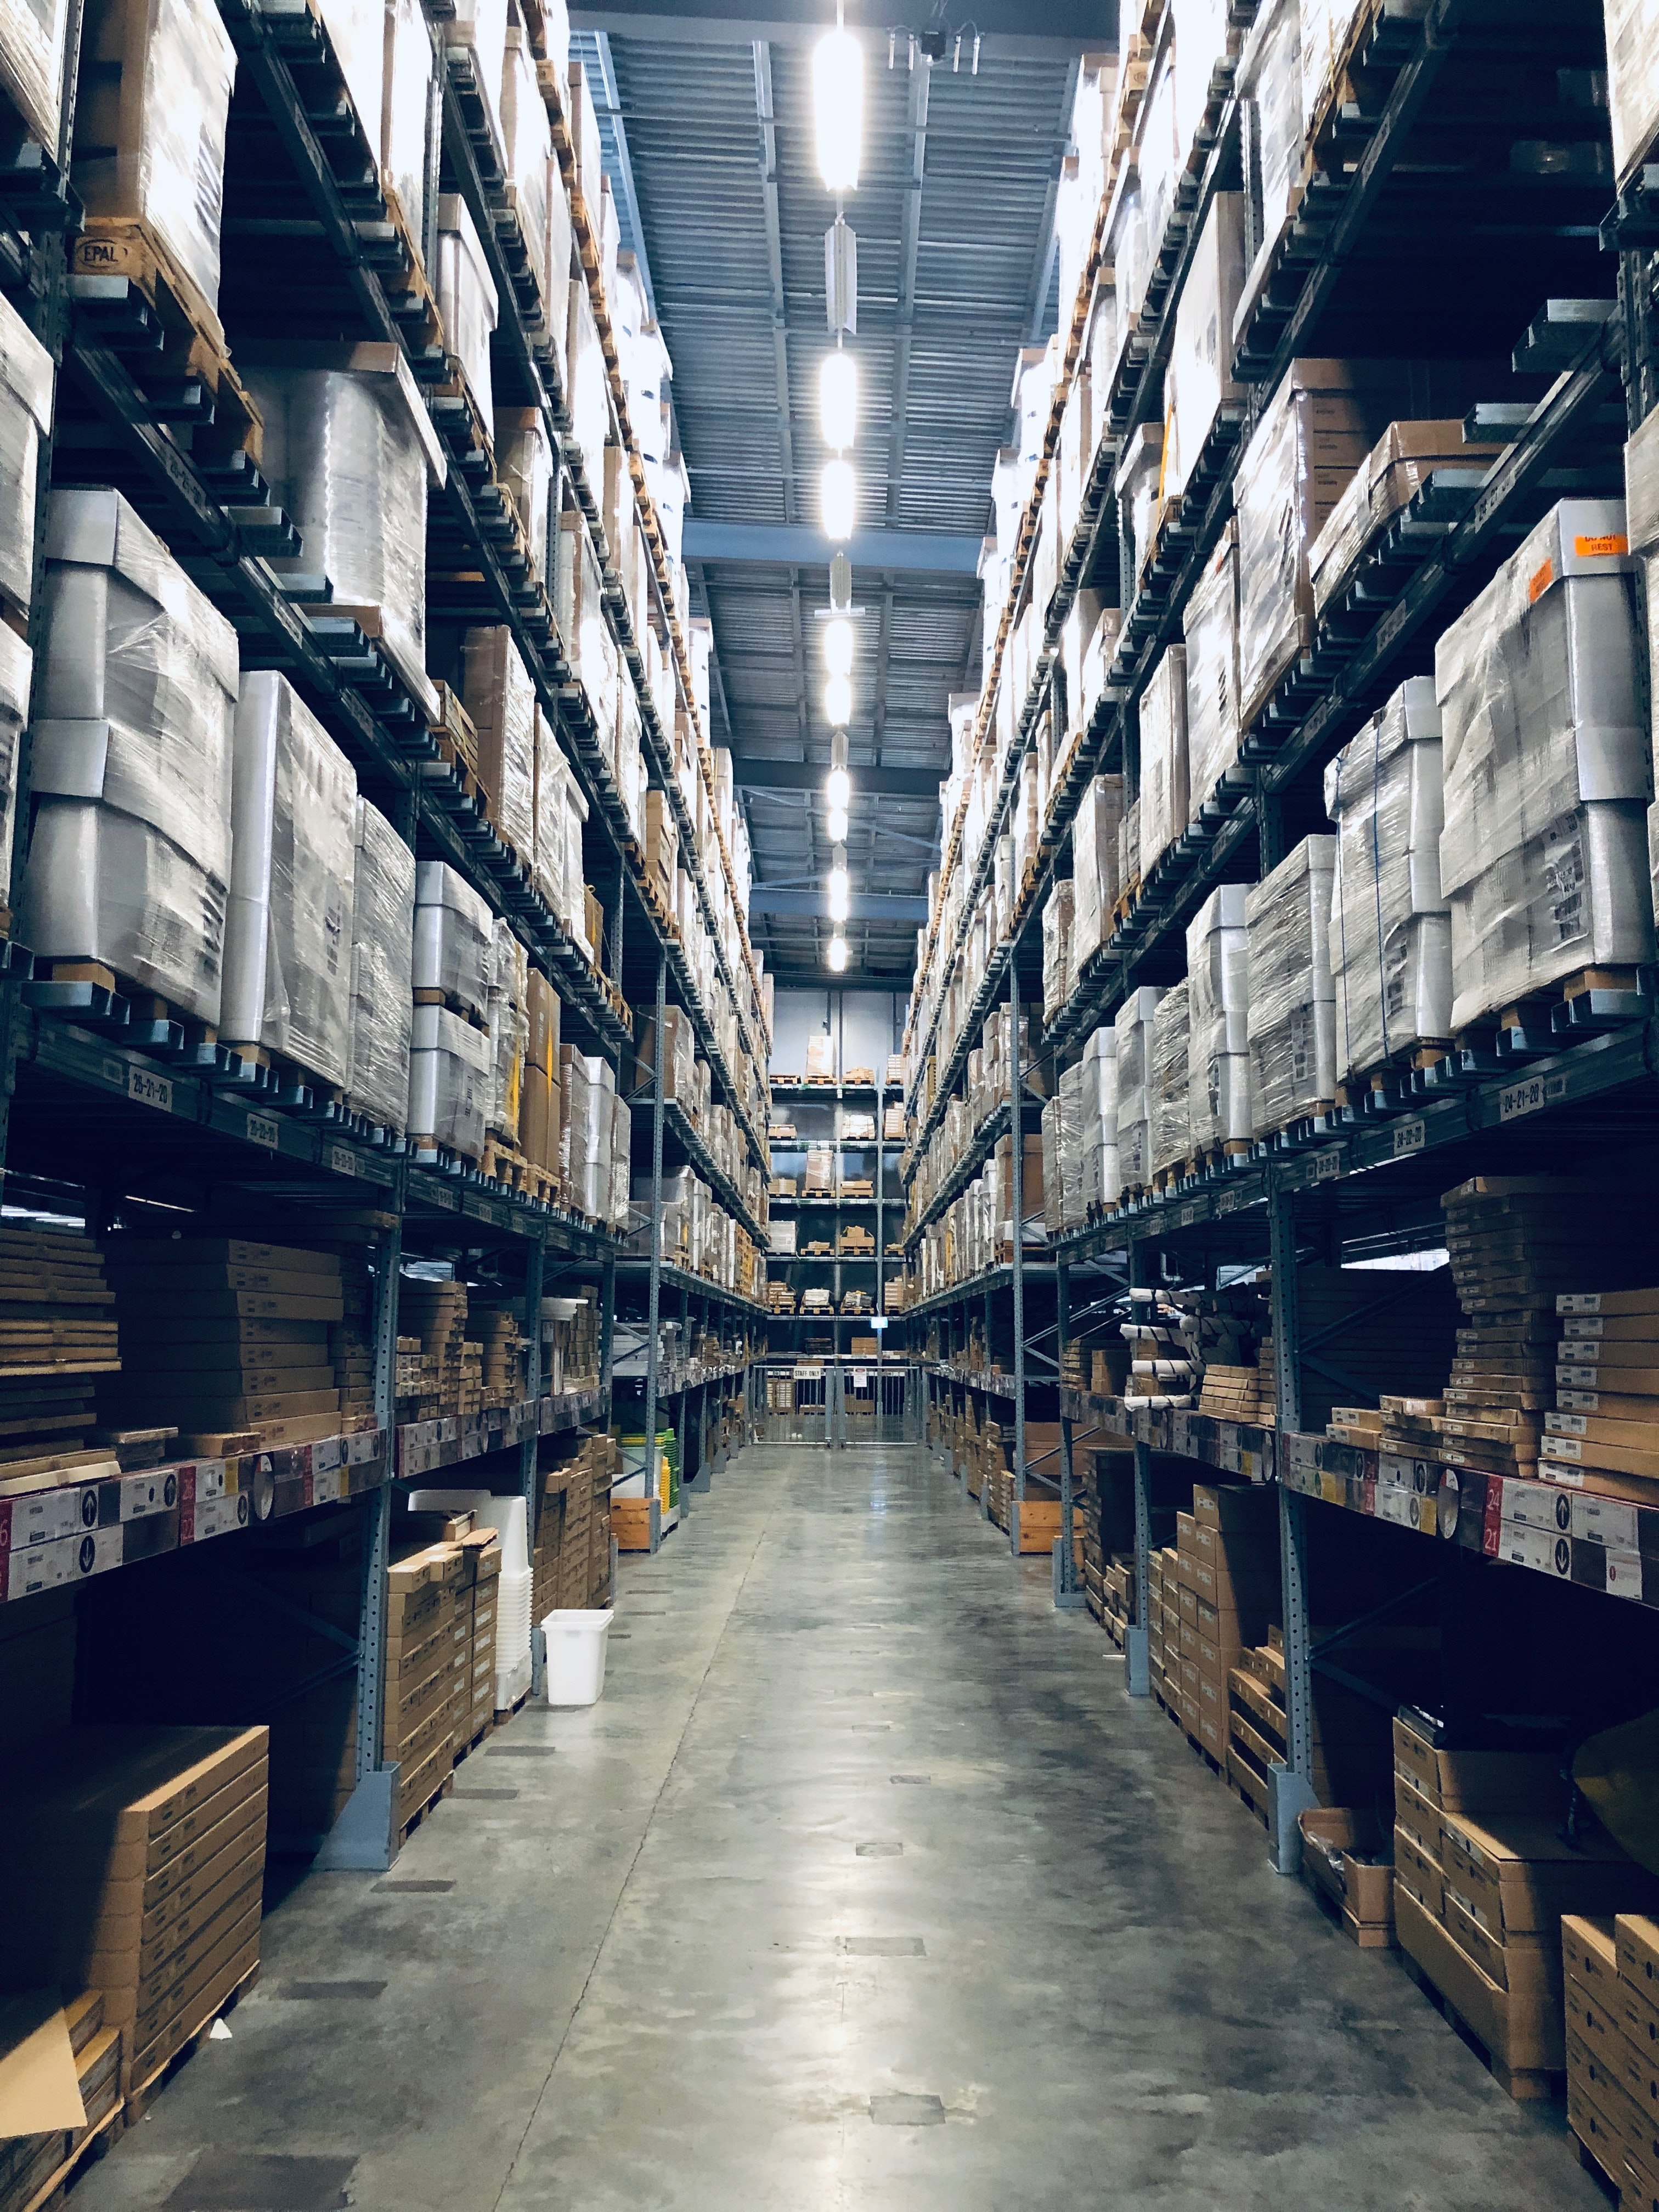 27+ Warehouse Pictures   Download Free